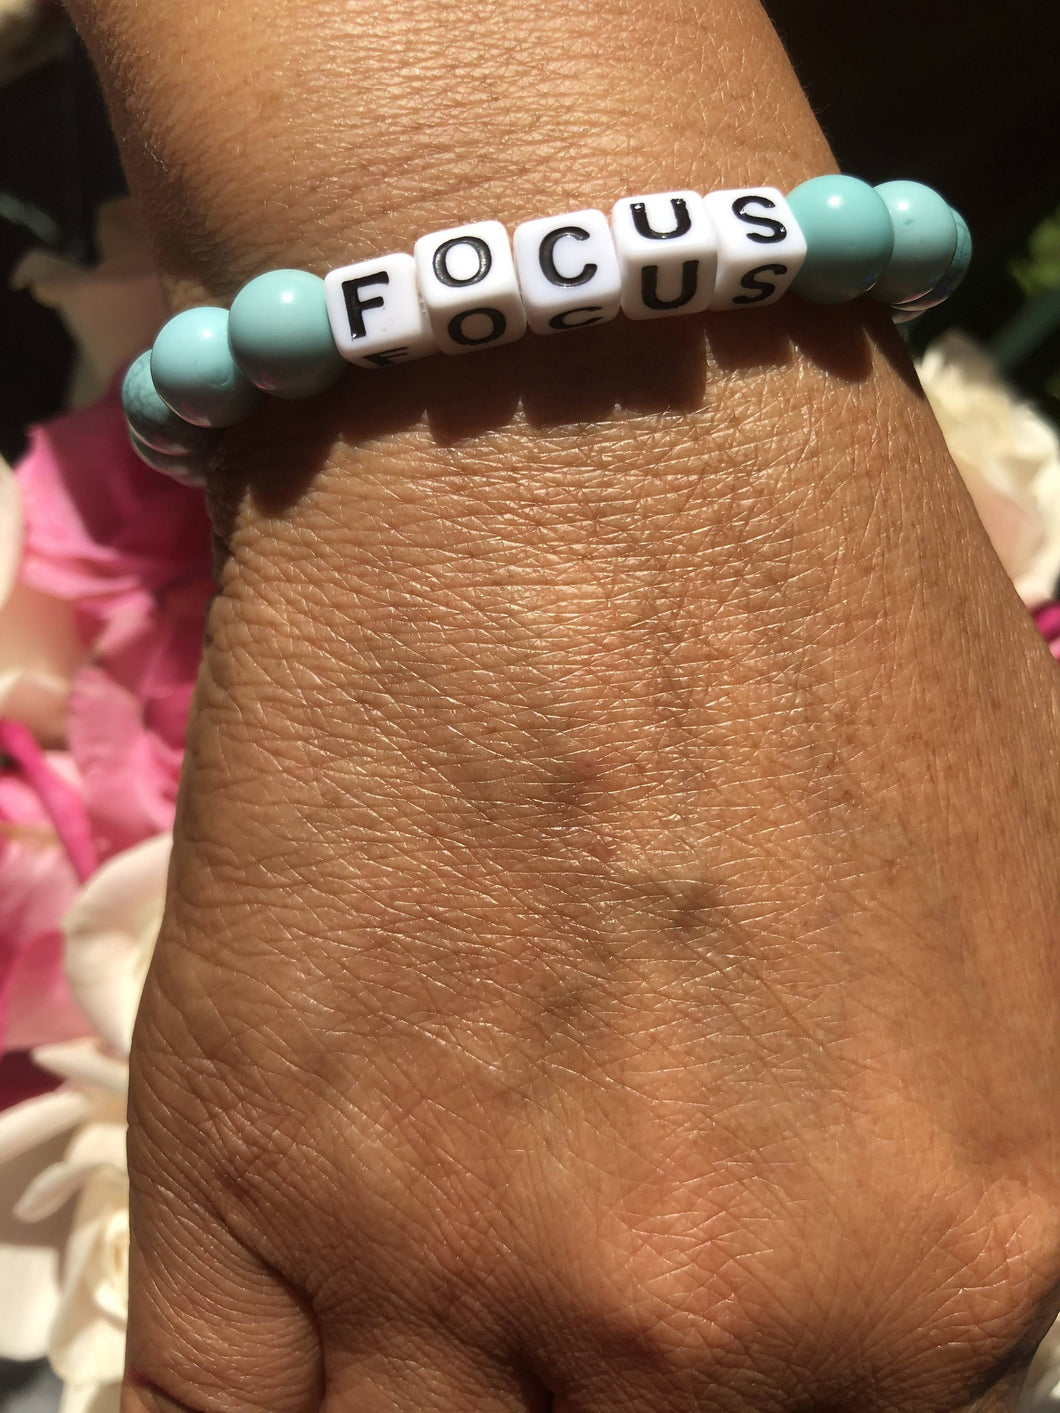 FOCUS and HOPE